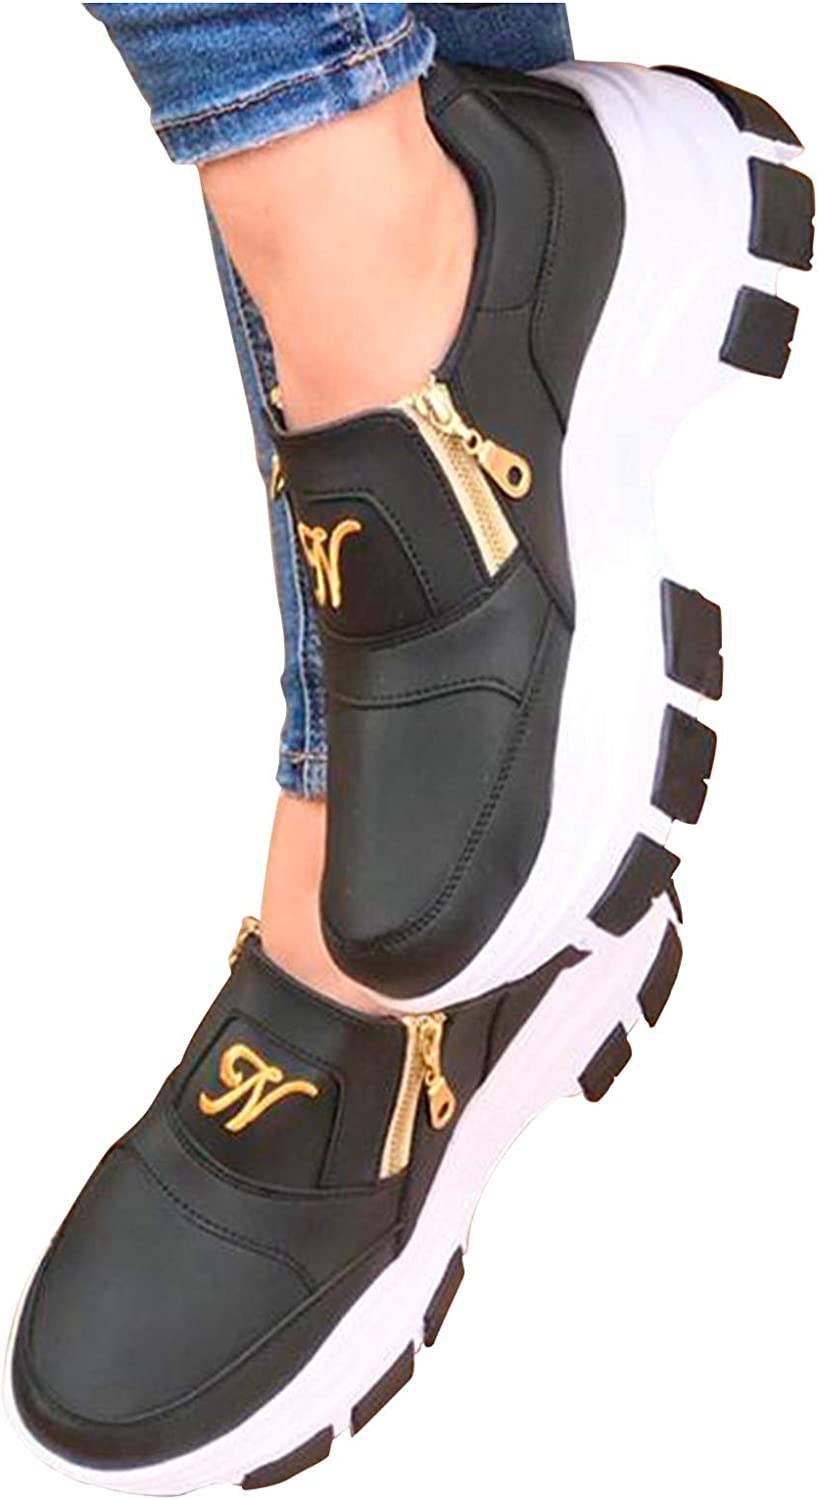 Women's Fashion Confortable Casual Platforms Increased Wedges Walking Sneakers Zipper Shoes